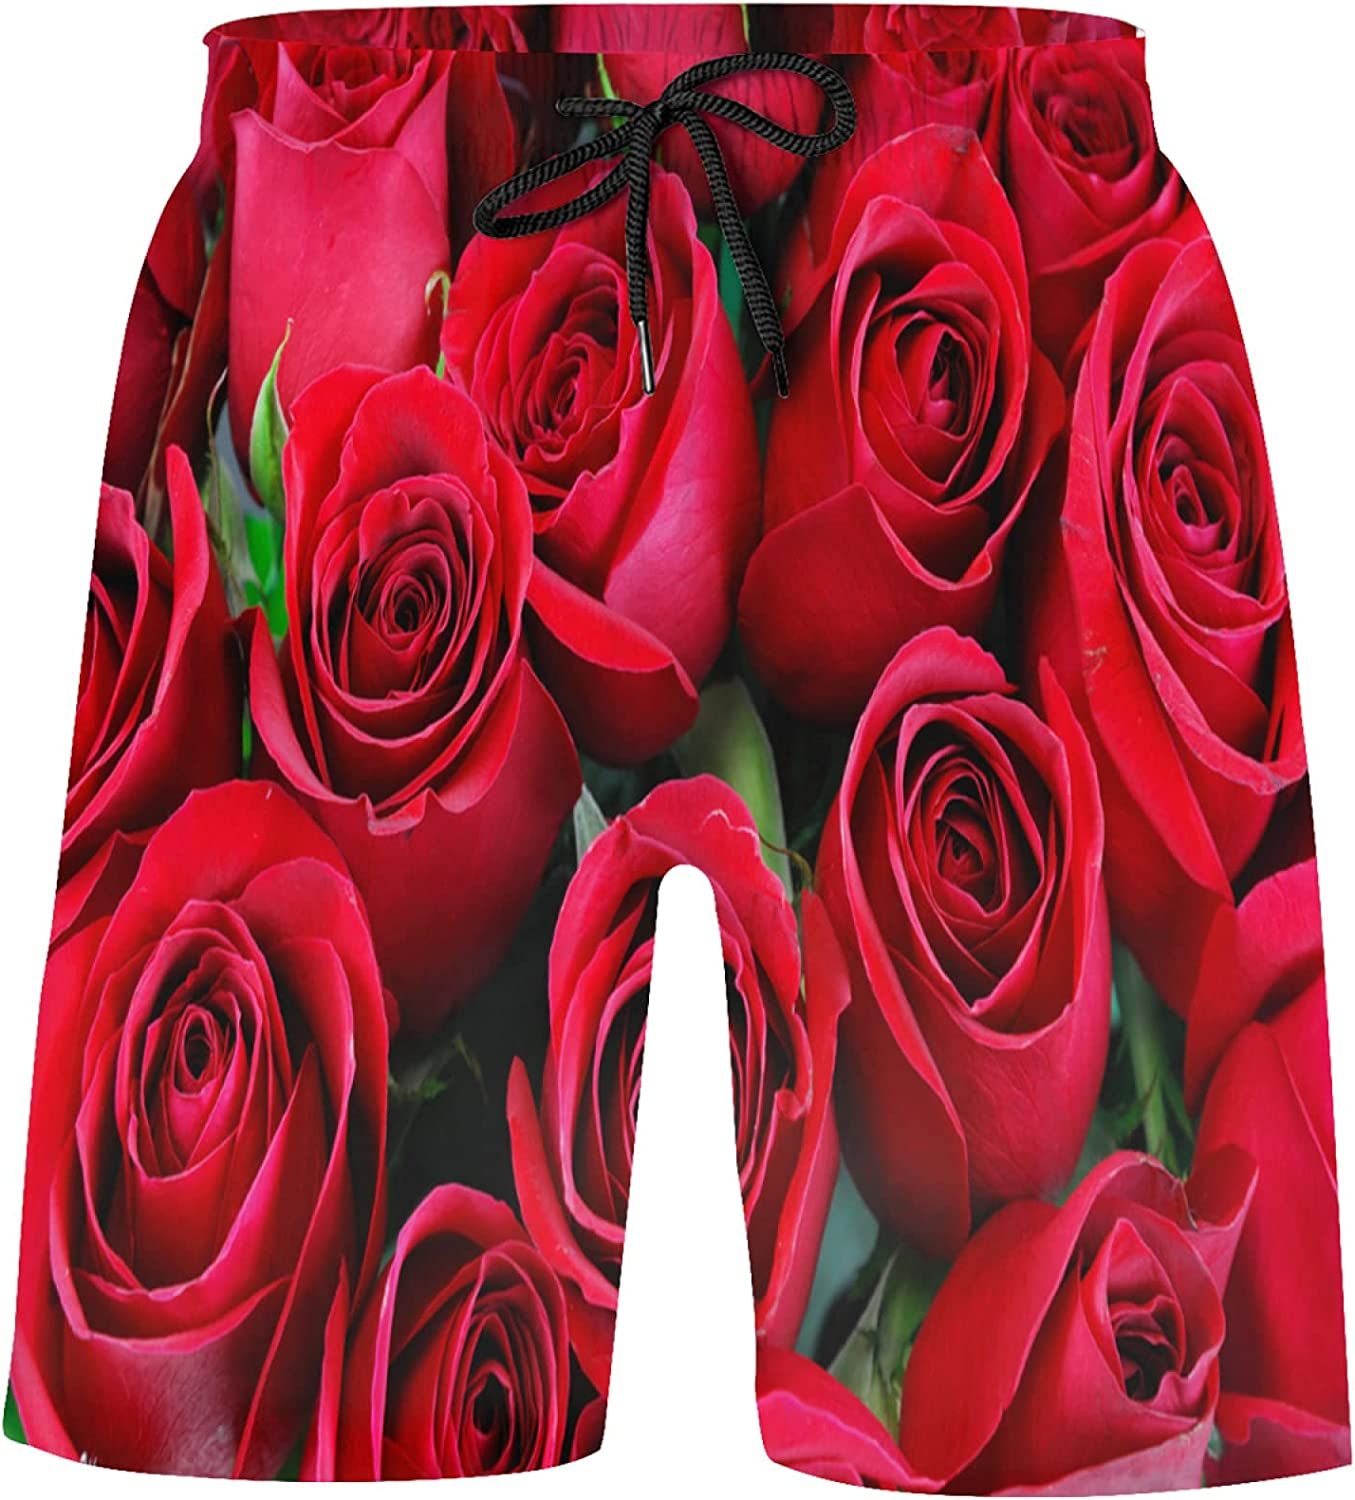 ZXZNC Weekly update Fresh Red Roses Bathing Suits Excellence Shorts Athletic Basketball S